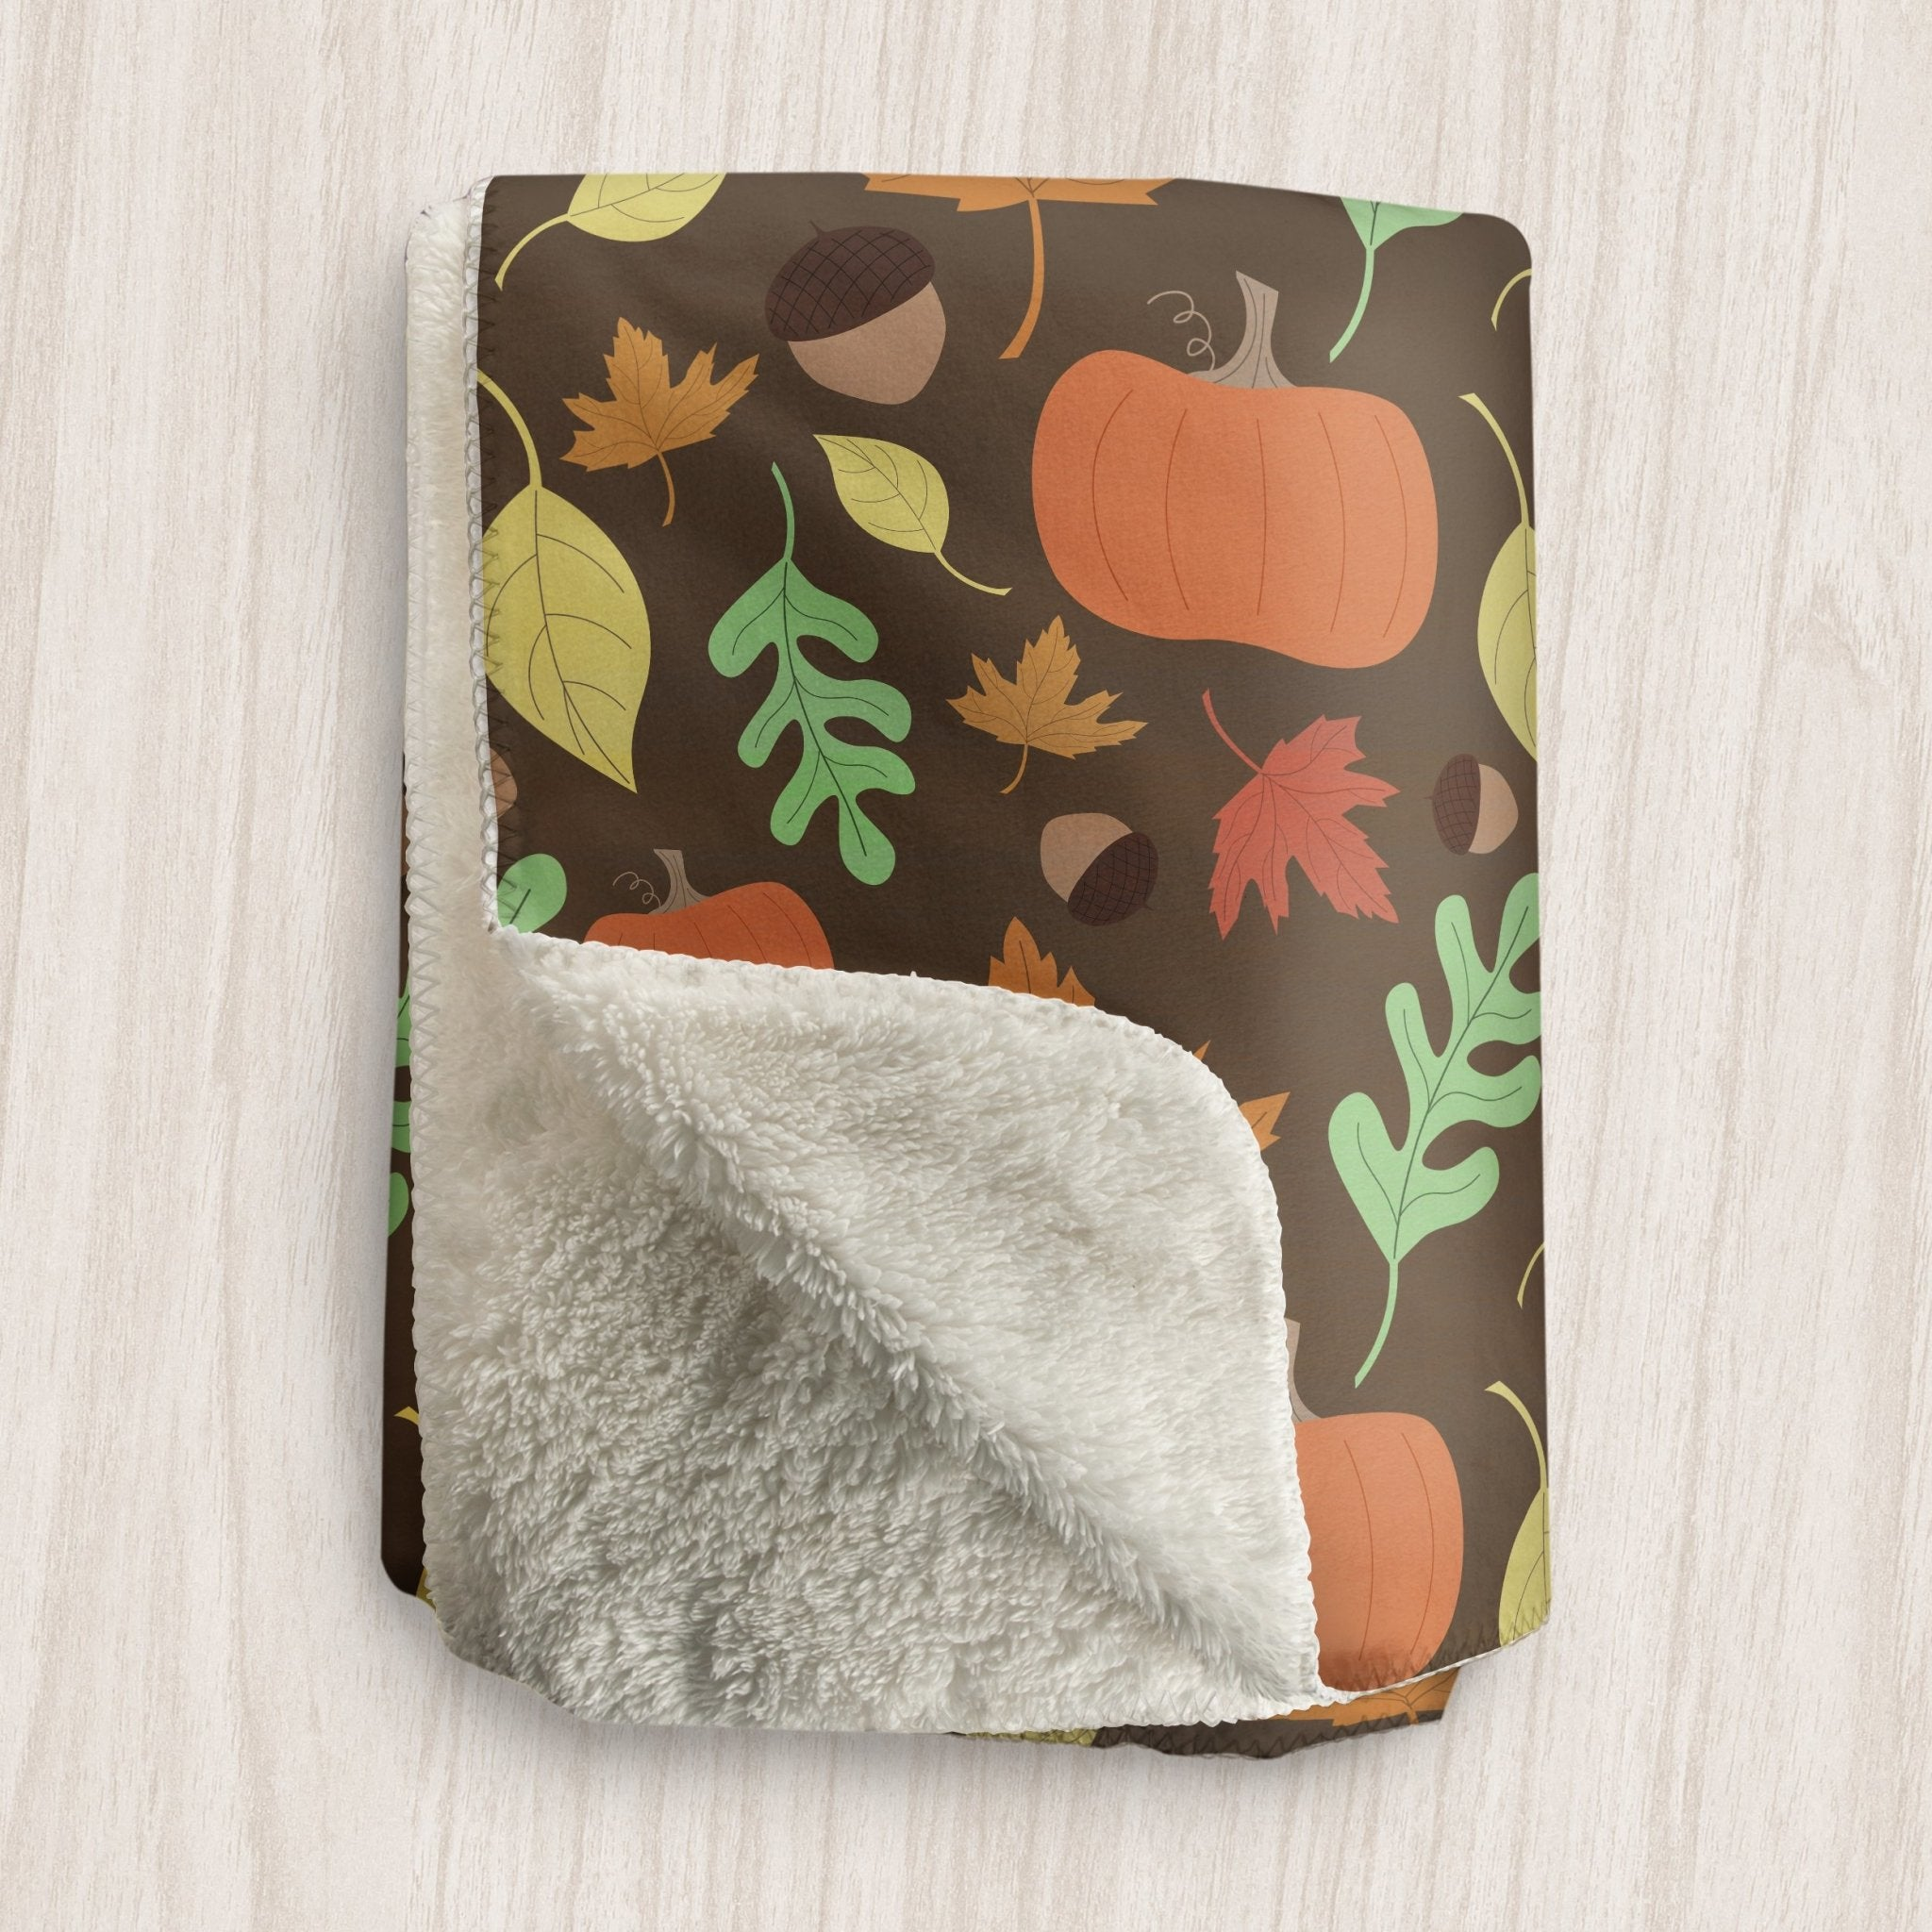 Autumn Pumpkins and Leaves Pattern Sherpa Fleece Blanket at Speckle Rock